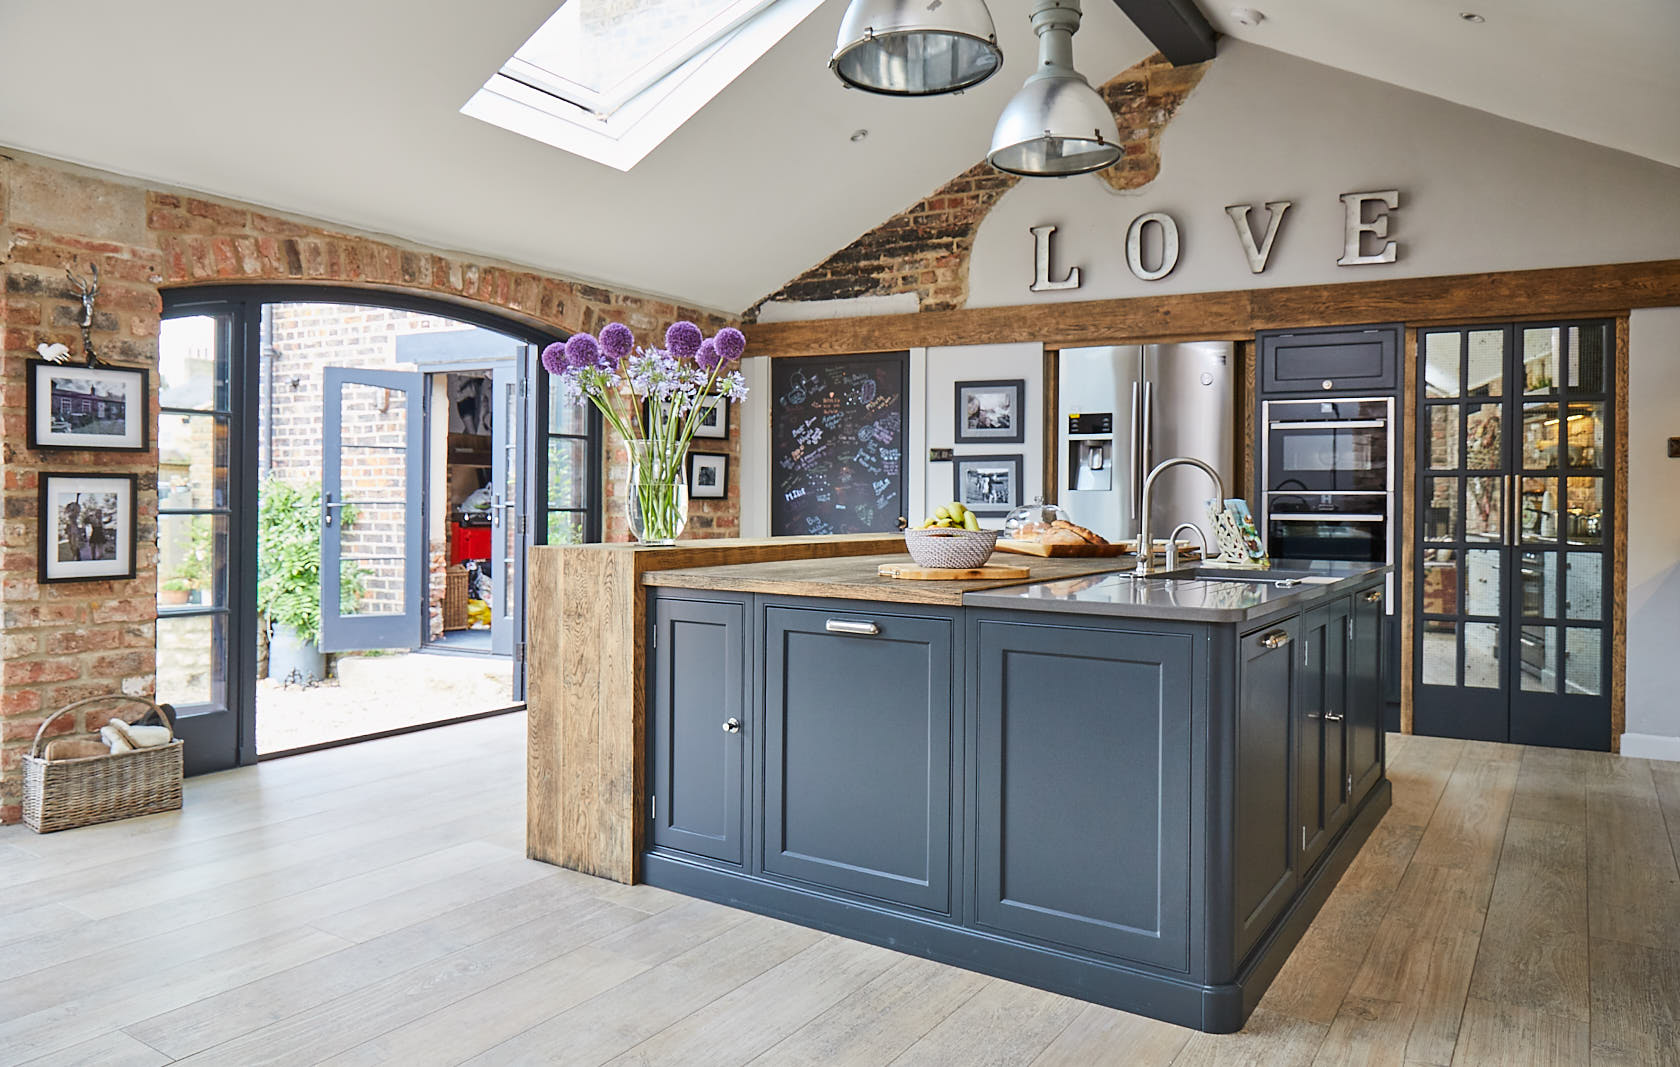 Painted shaker cabinets make up kitchen island with Caesarstone and oak worktop